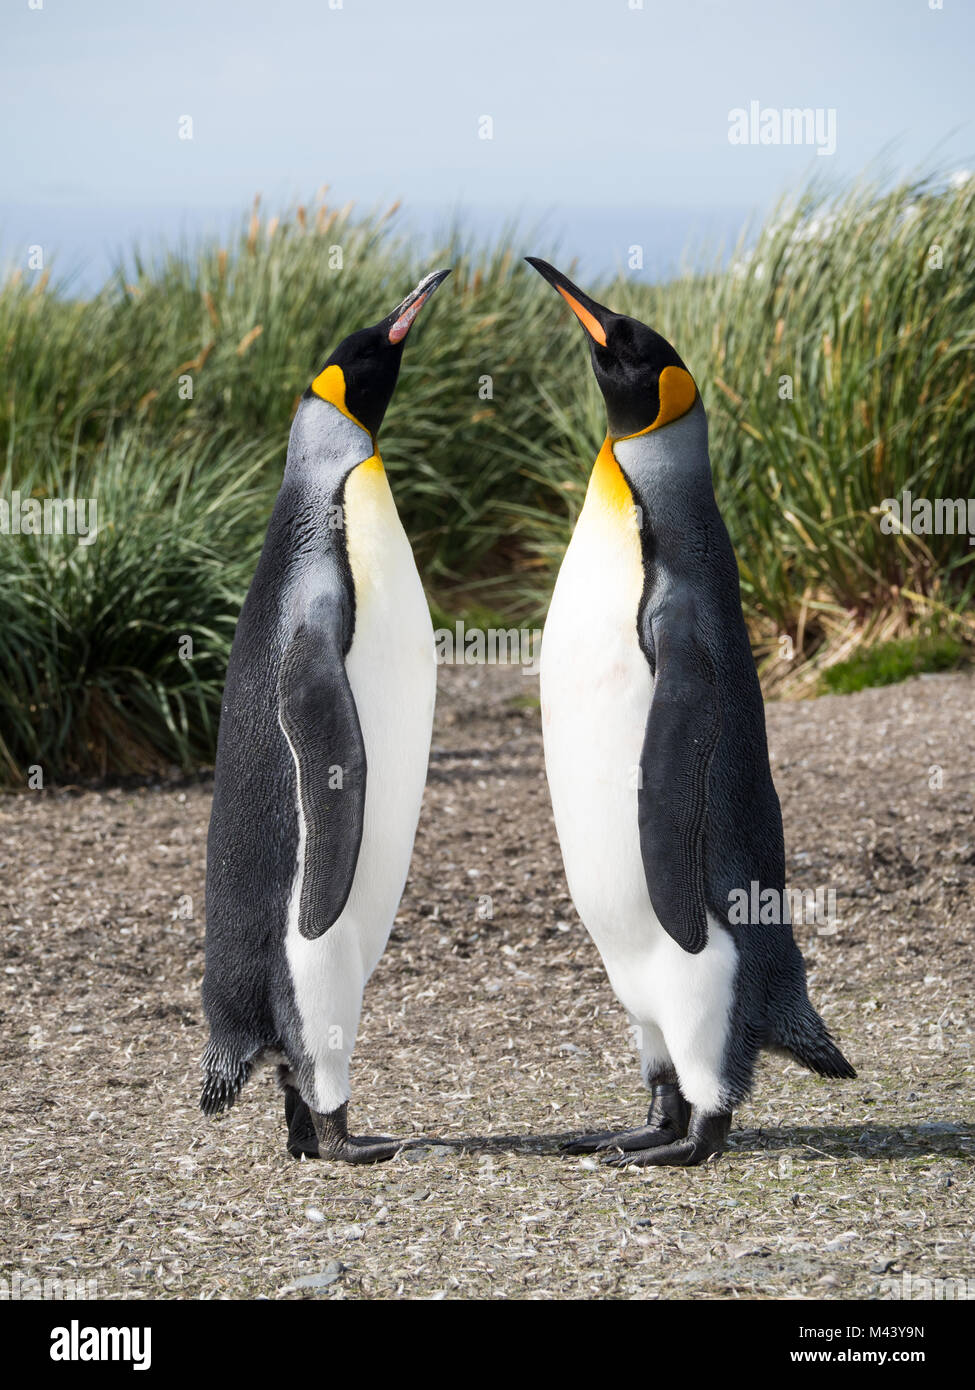 A pair of courting king penguins standing with beaks raised toward the sky. Tussac grass is in the background. Shallow - Stock Image